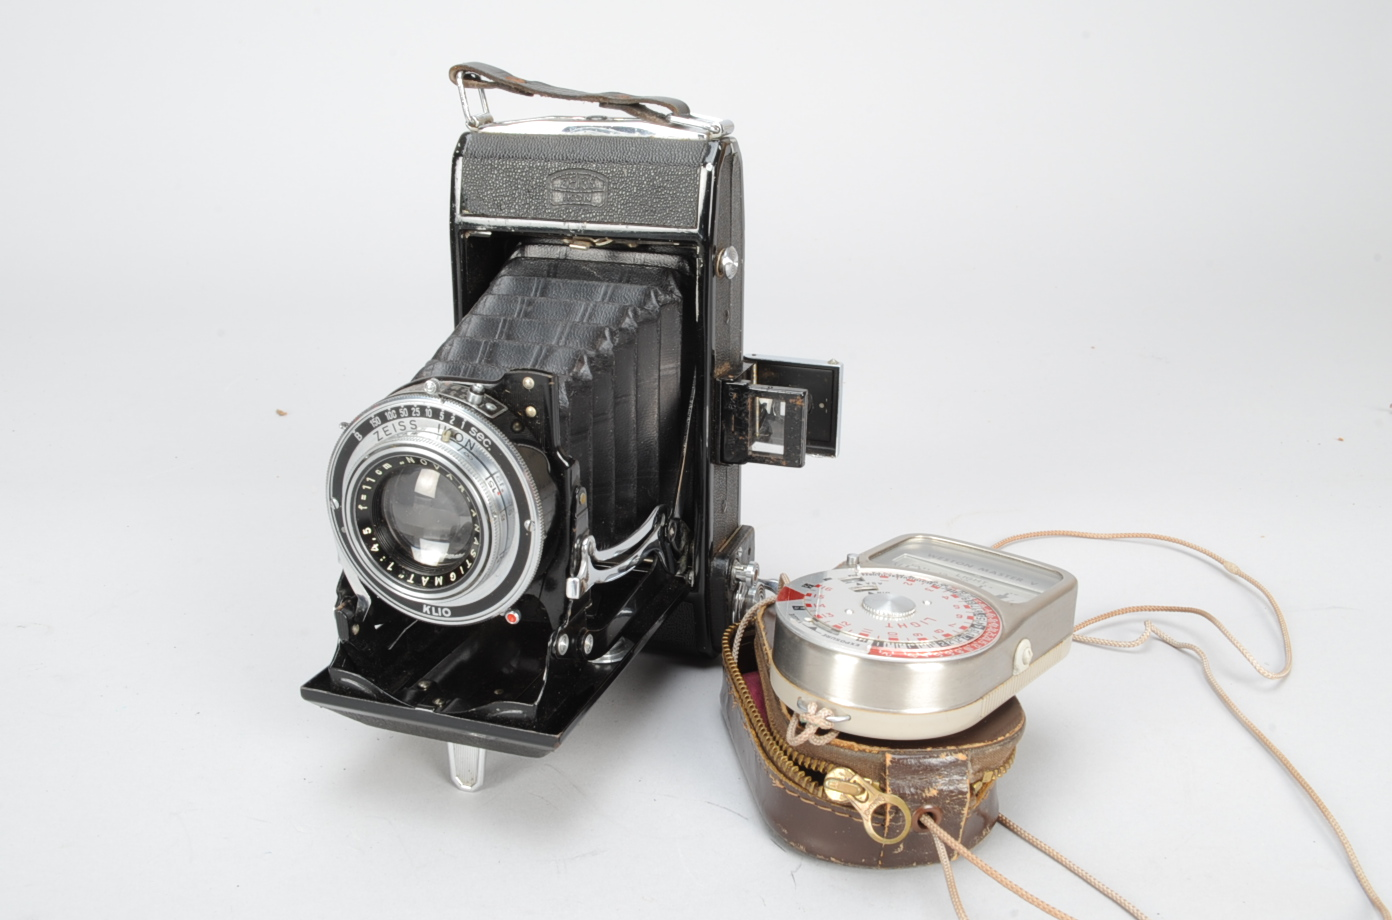 Lot 59 - A Zeiss Ikon Nettar 516/2 6 x 9cm Folding Camera, with a Novar-Anastigmat 11cm f/4.5 lens and a Klio